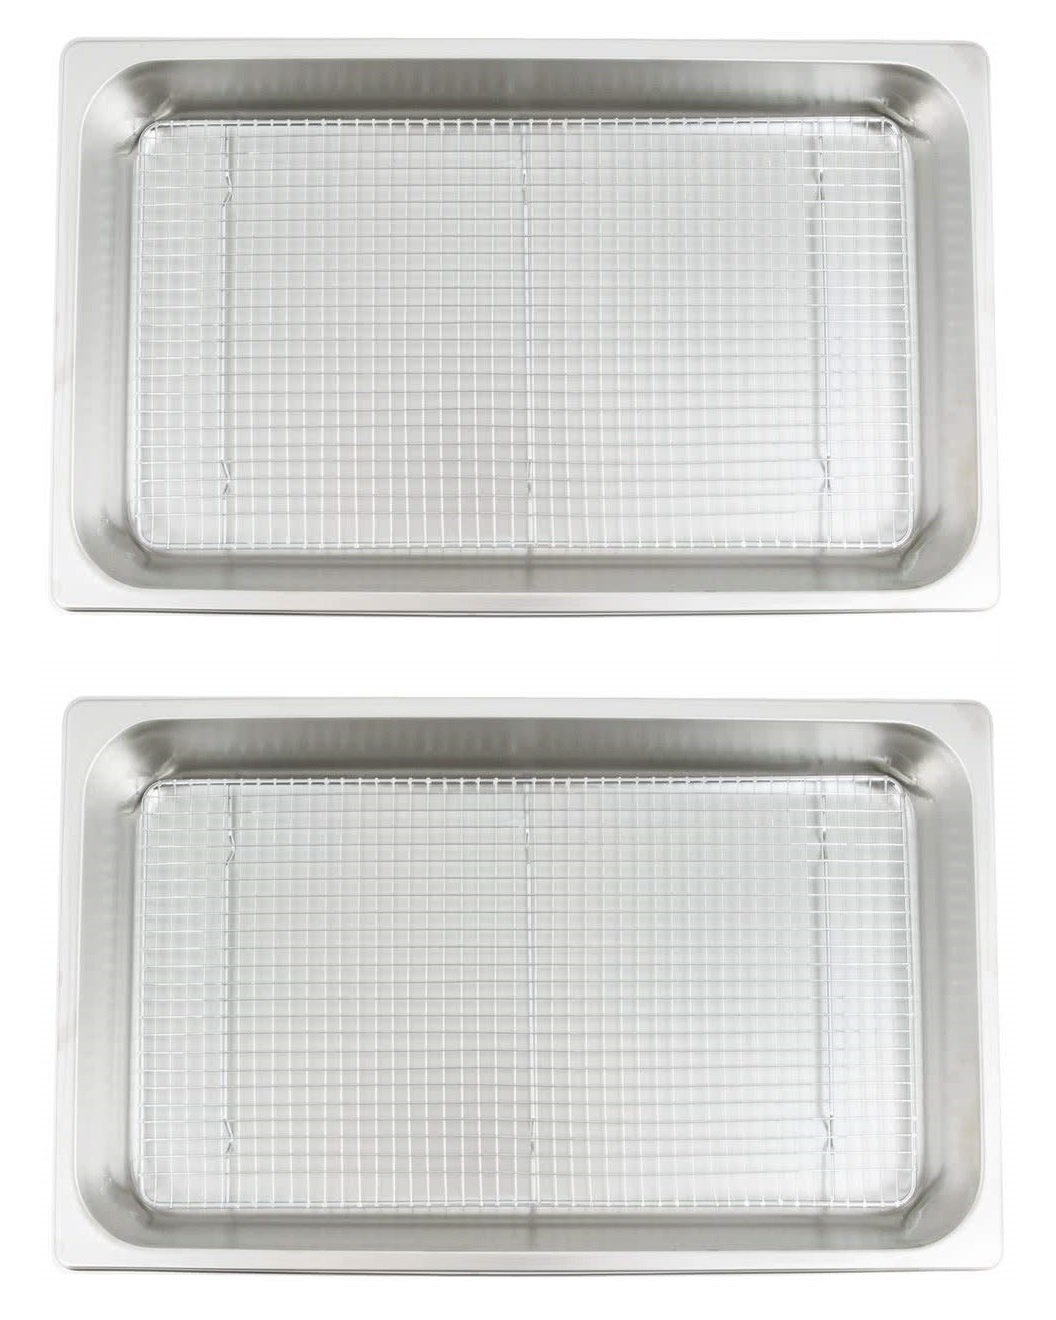 Commercial Grade Full Size Pan and Cooling Rack/Pan Grate Set for Standing Heat Lamps